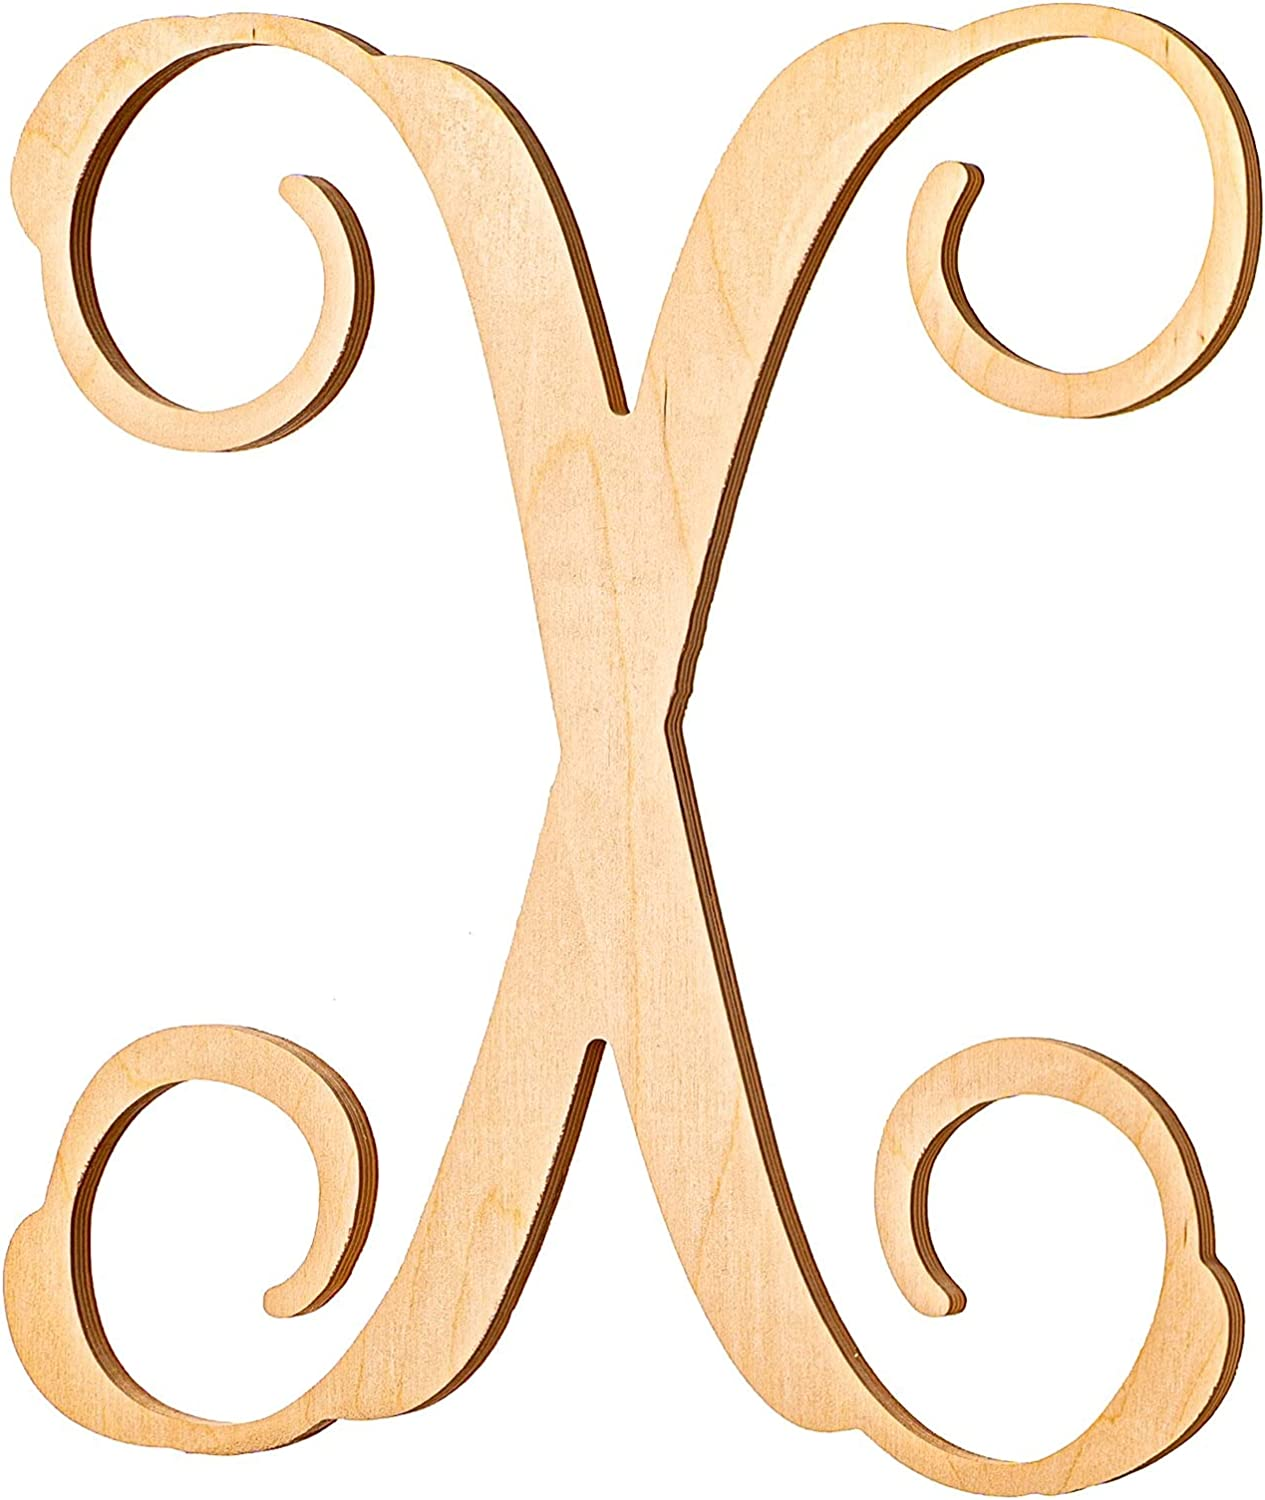 UNFINISHEDWOODCO Wooden Letter Monogram Room 13 Outstanding Fixed price for sale Inche - Décor